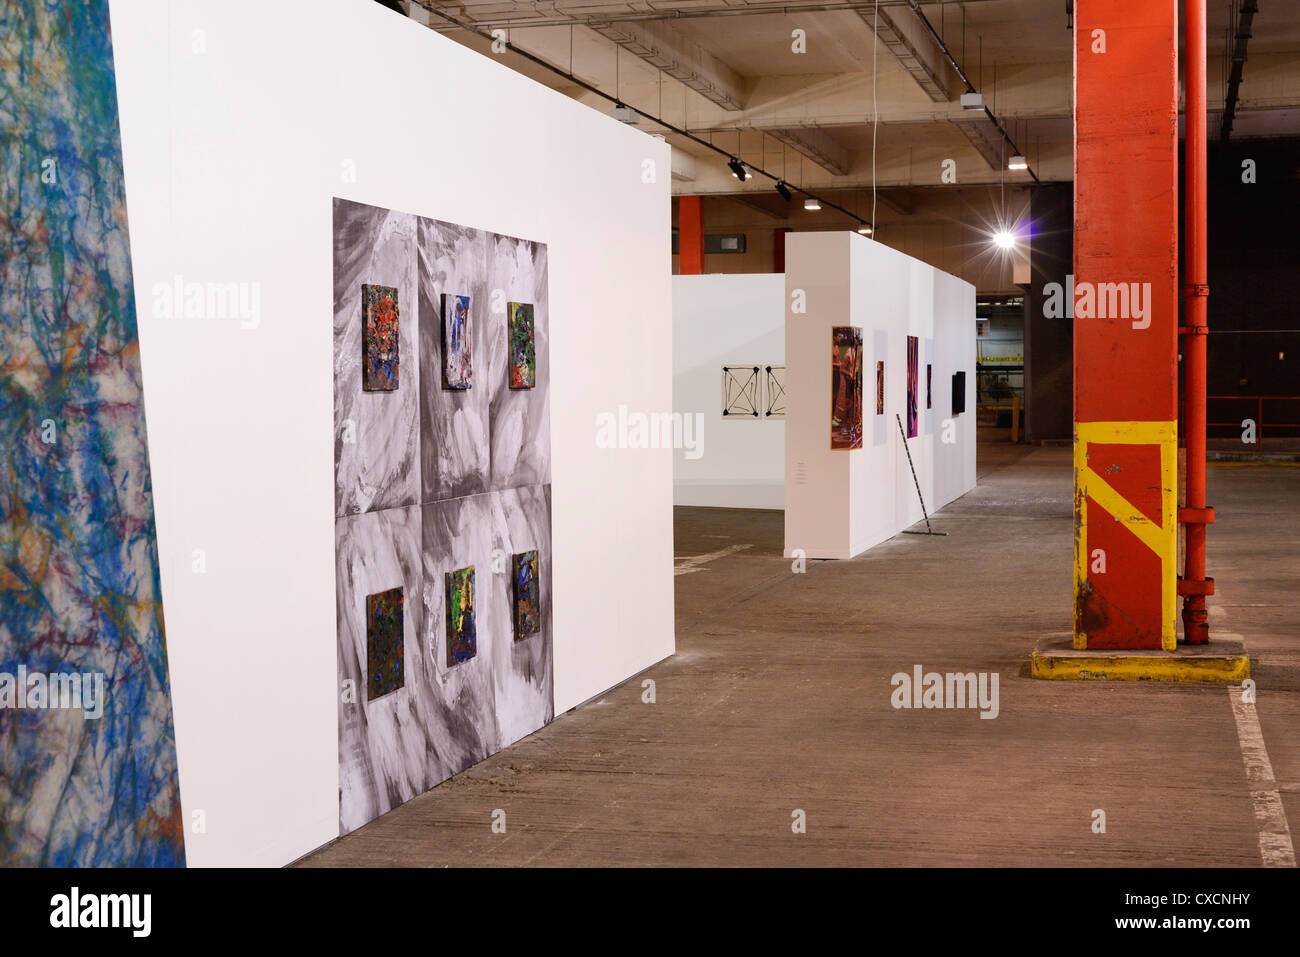 Bloomberg New Contemporaries 2012 art exhibition as part of the Liverpool Biennial - Stock Image